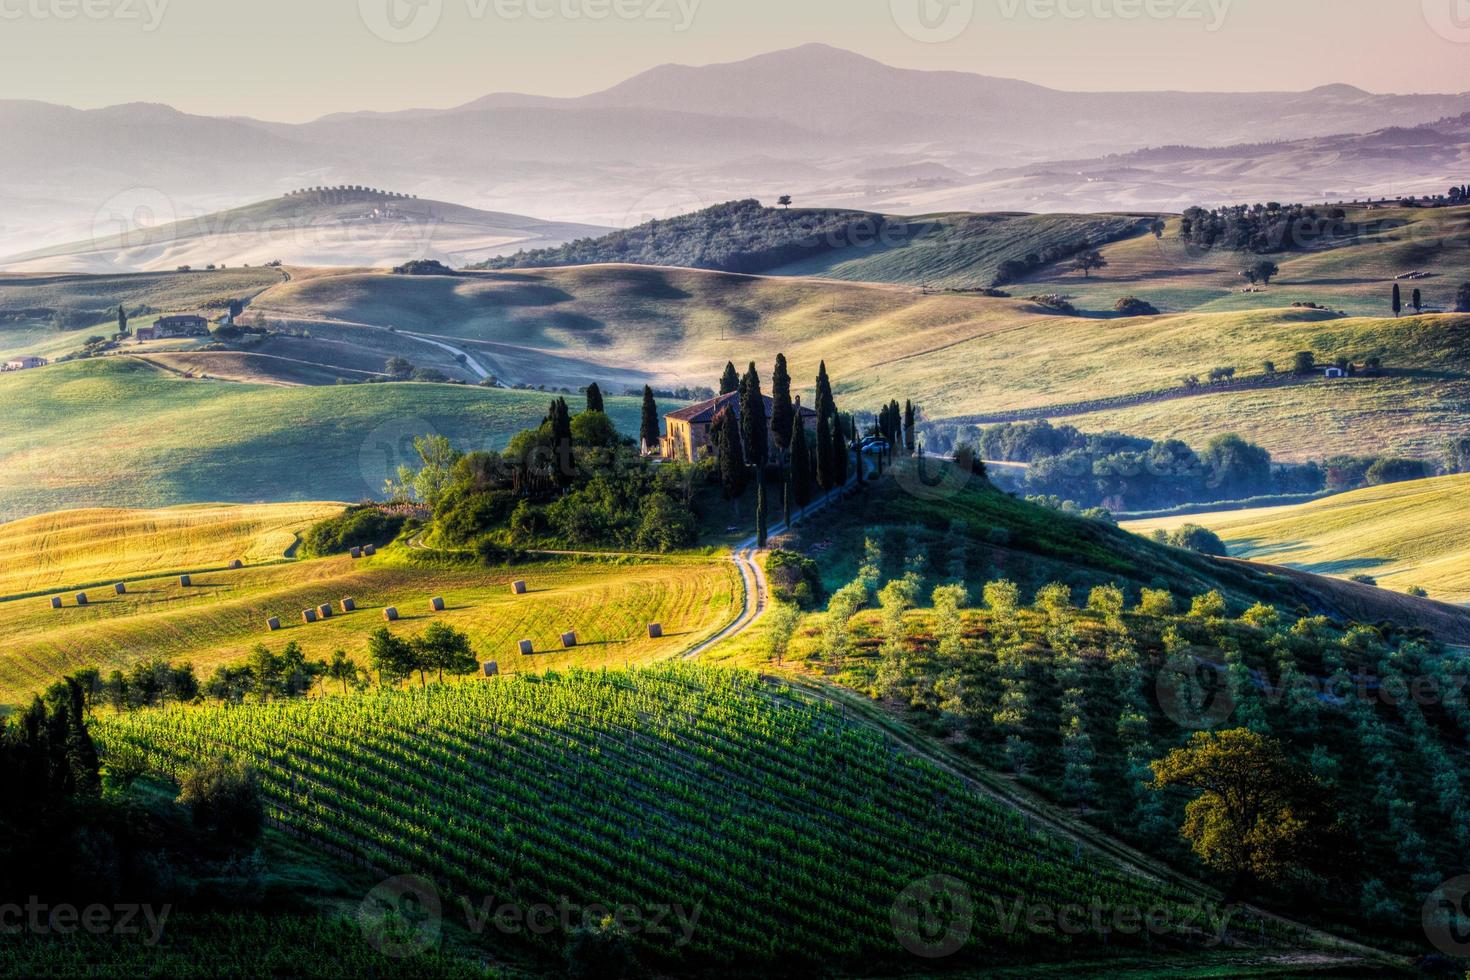 The Tuscan Landscape photo